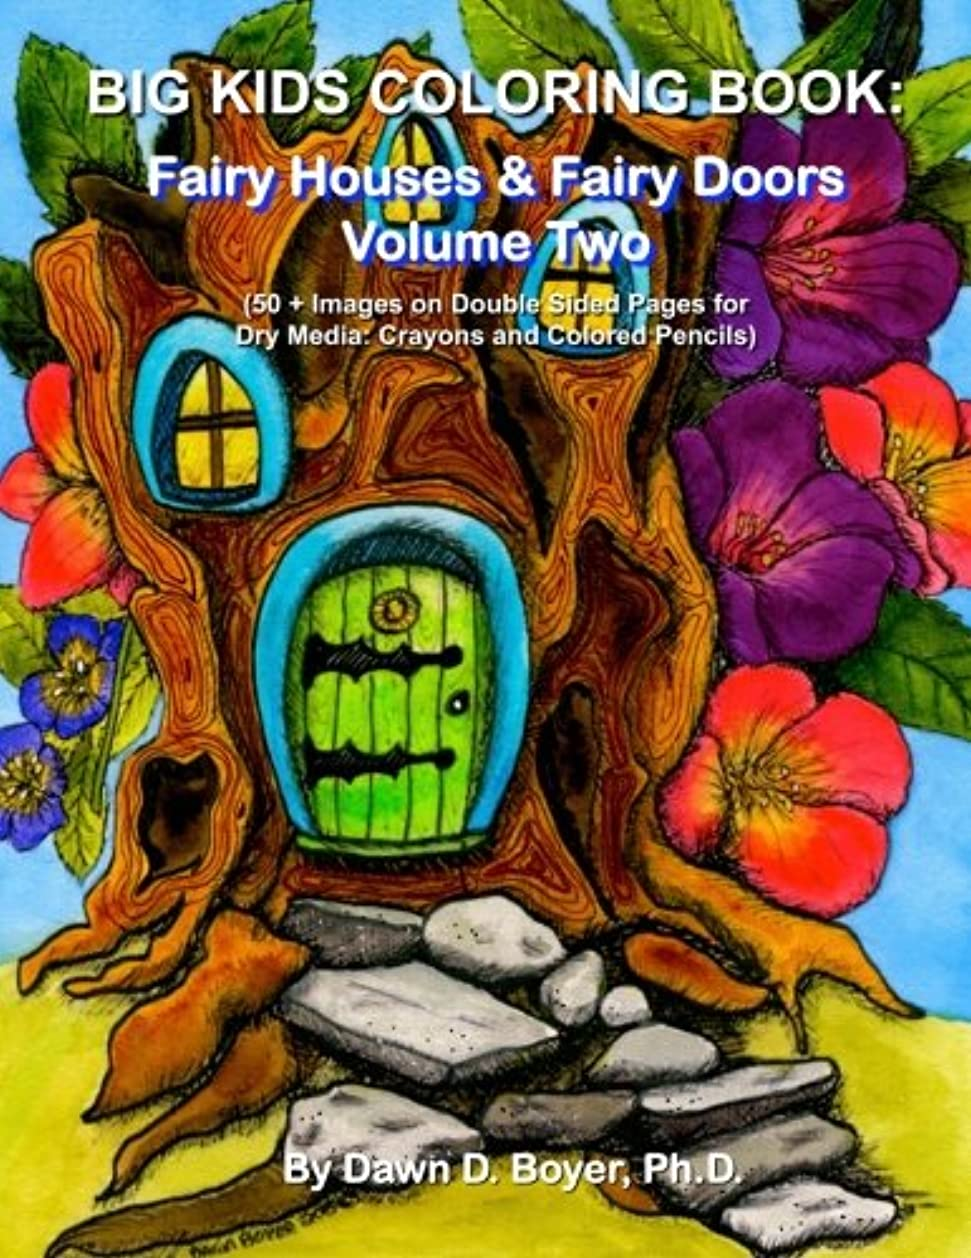 リビジョン悲鳴スパイラルBig Kids Coloring Book: Fairy Houses & Fairy Doors Volume Two: 50+ Images on Double-sided Pages for Crayons and Colored Pencils (Big Kids Coloring Books)